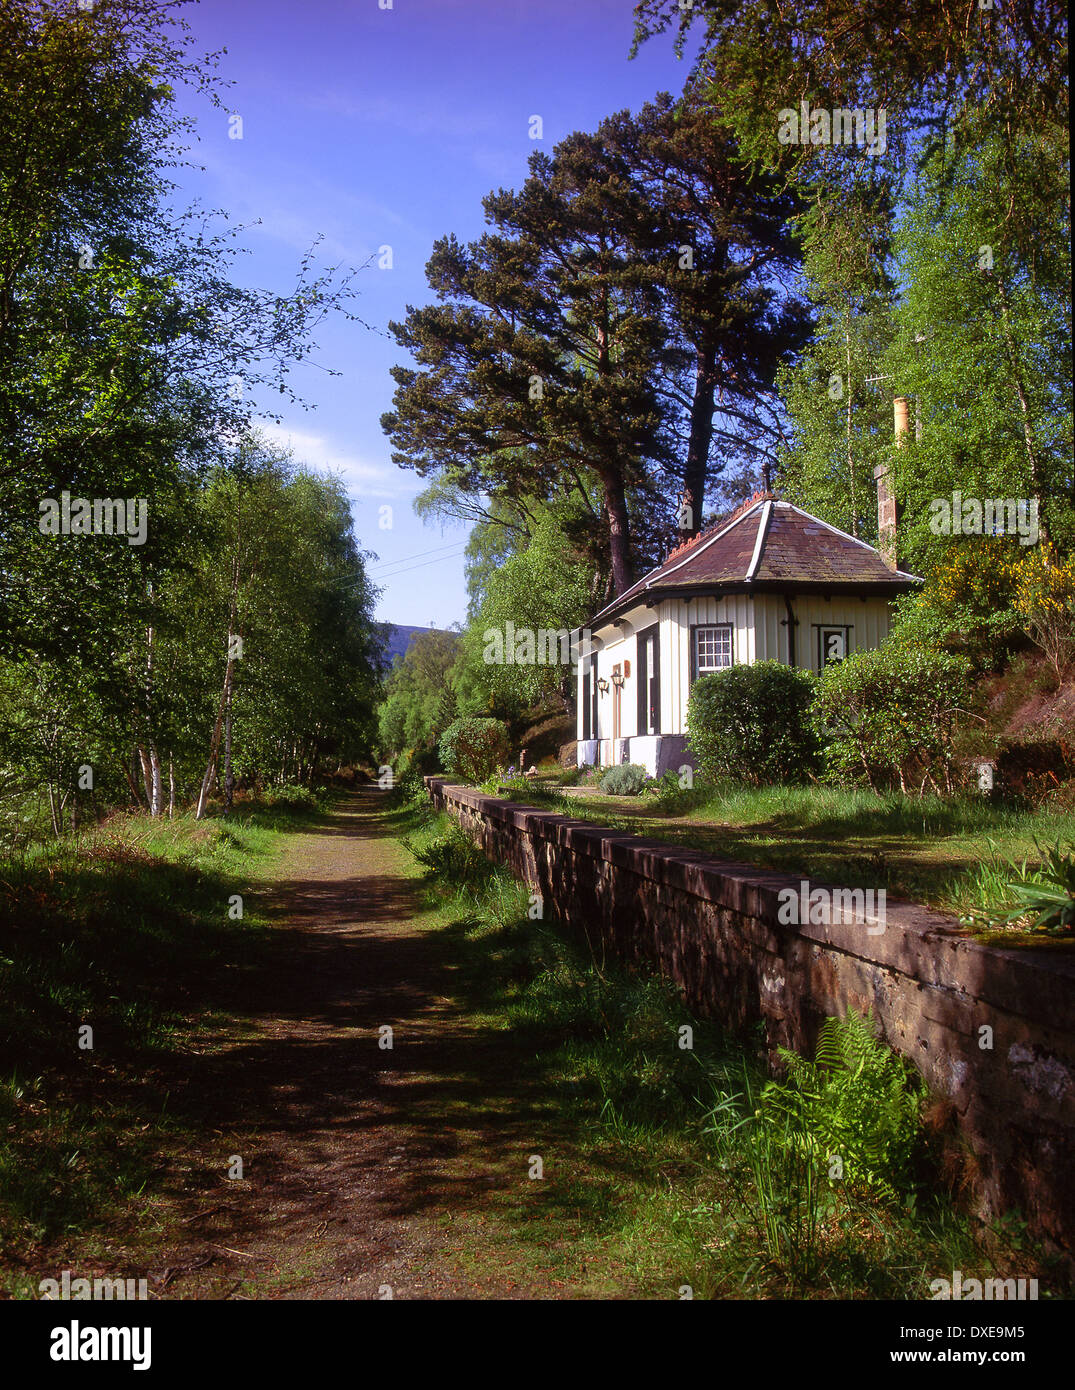 The old station platform and station at Cambus O May in royal Deeside near Ballater. - Stock Image